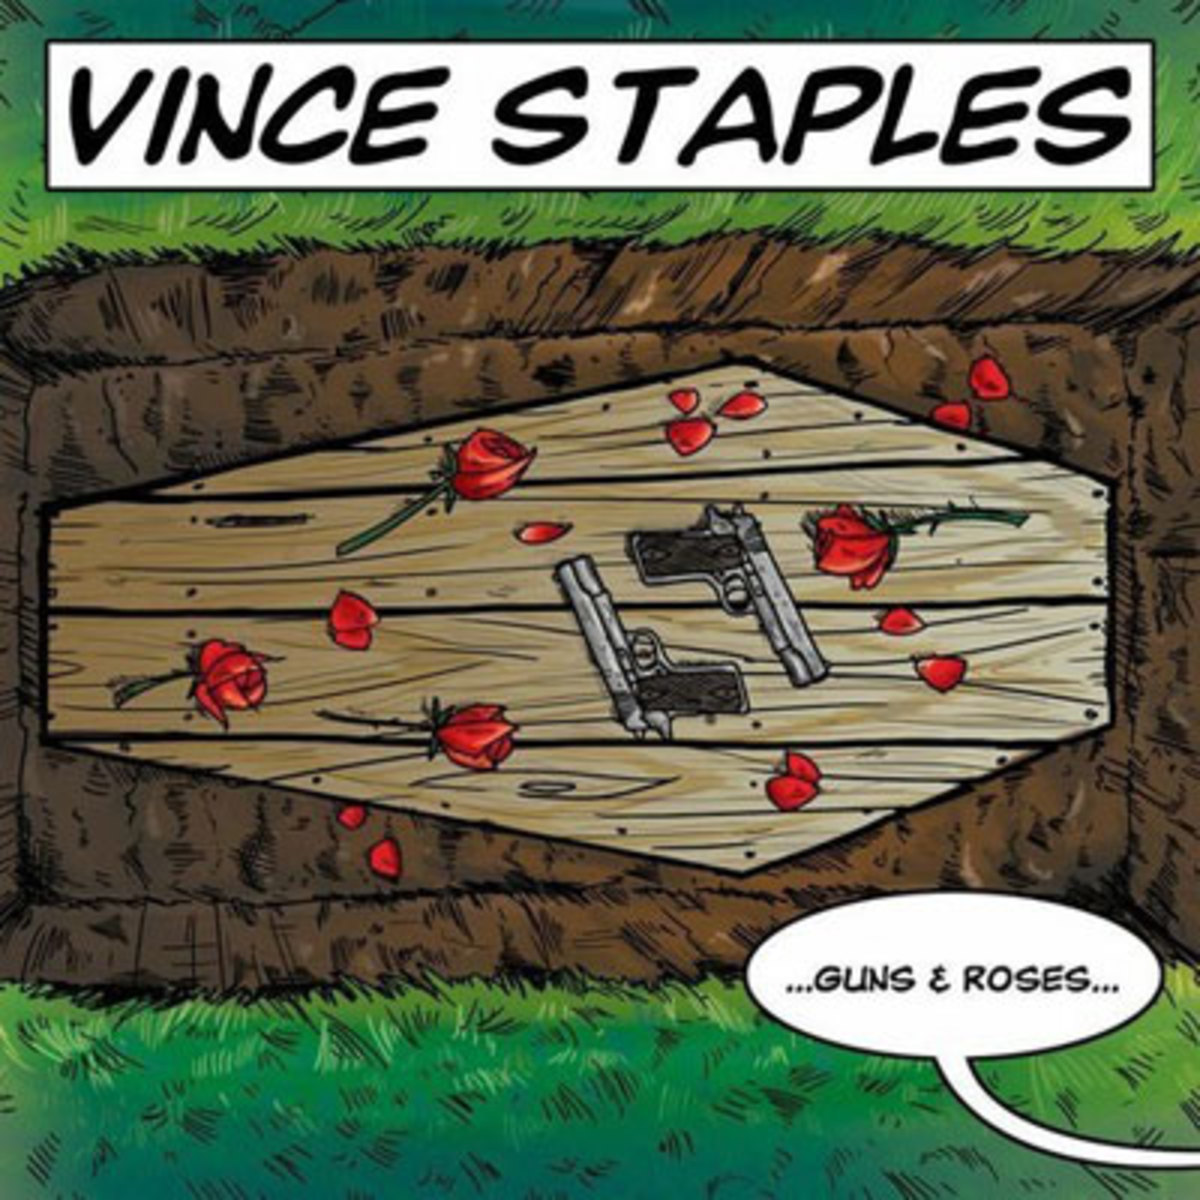 vincestaples-gunsroses.jpg